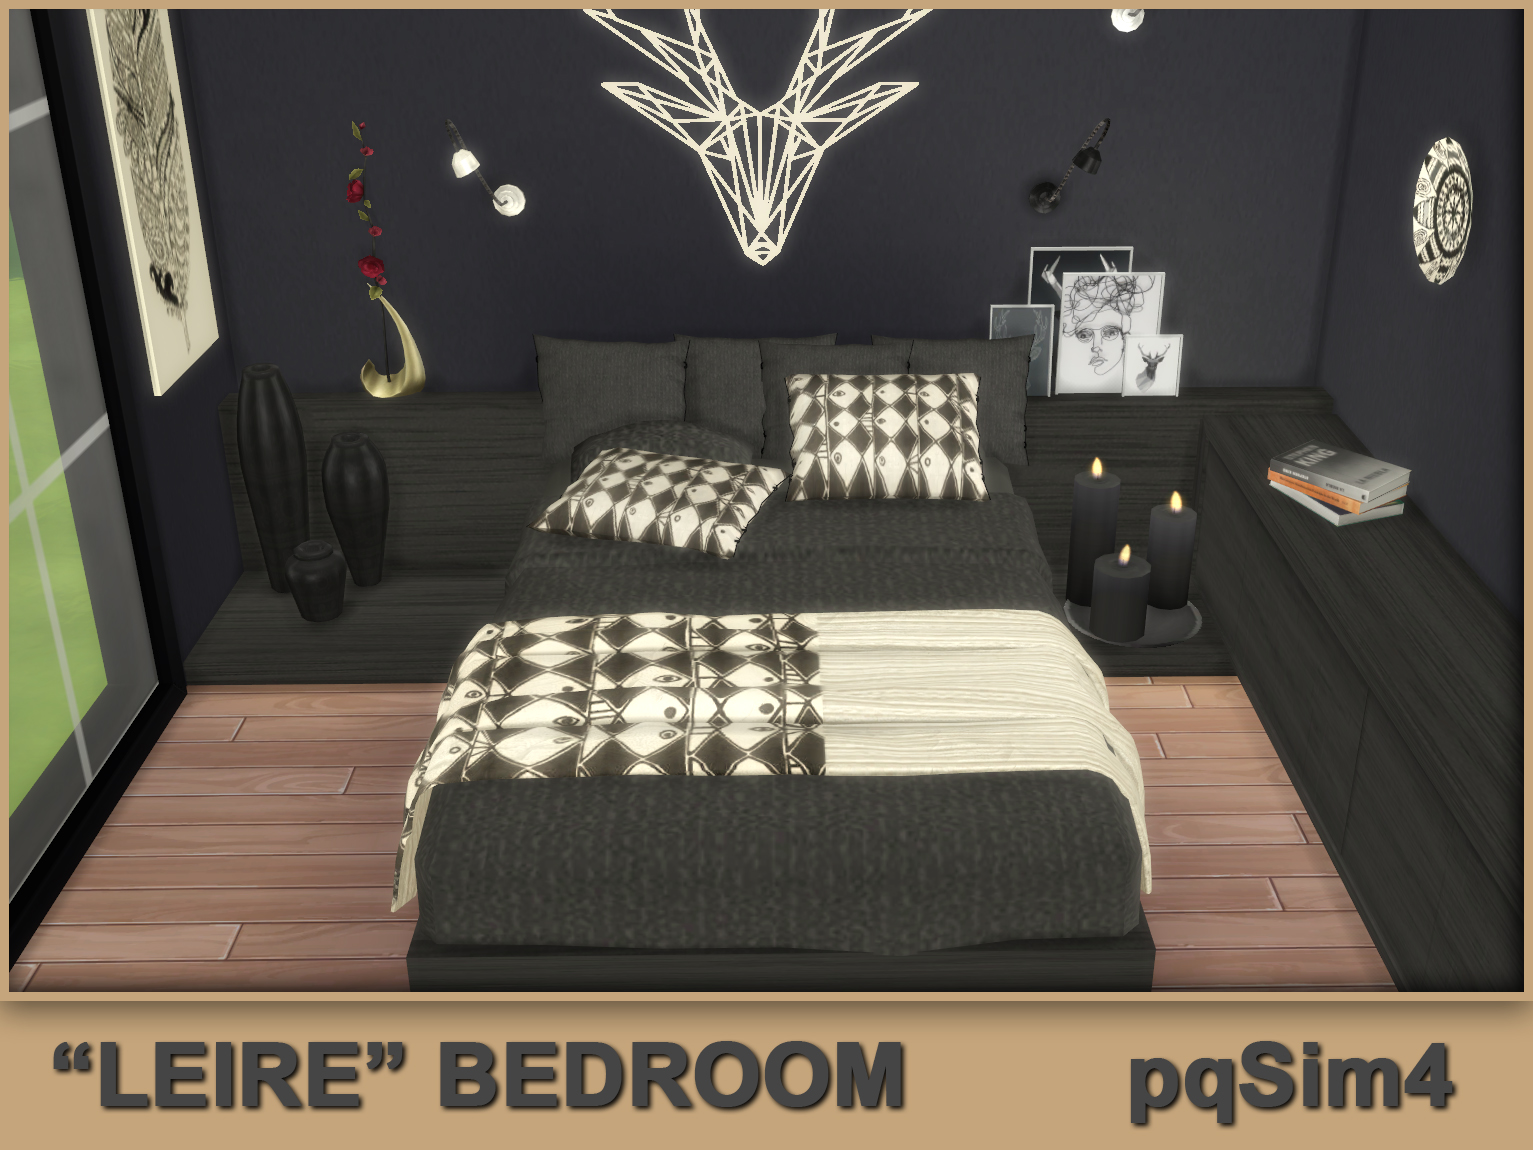 Leire bedroom sims 4 custom content for Bedroom designs sims 4